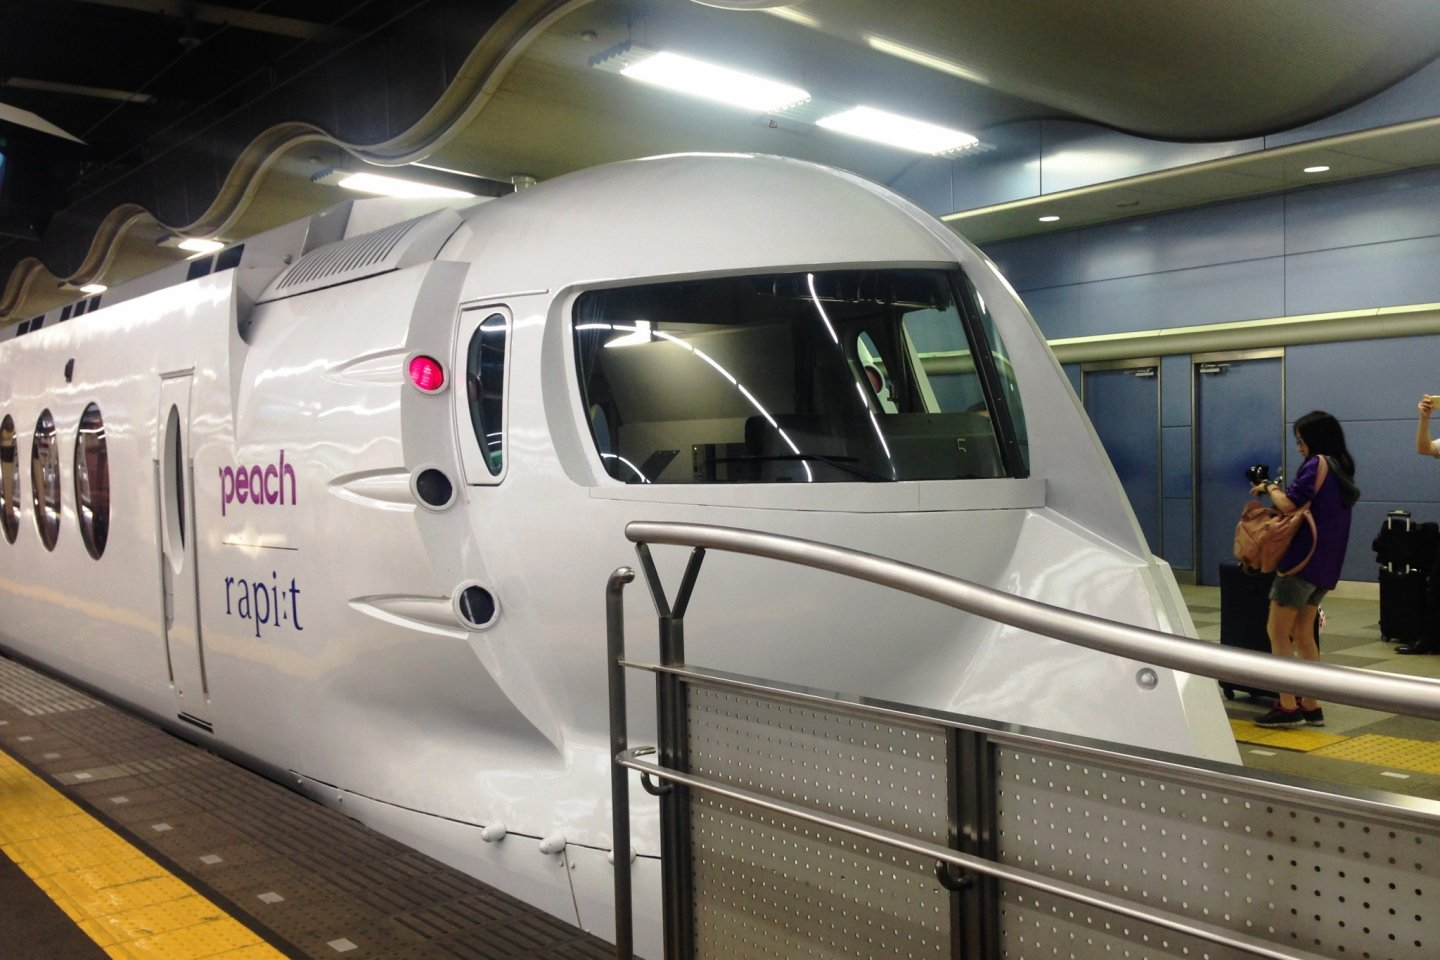 The special white edition of the Nankai Rapit Limited Express with Peach Airways colors. Kintetsu Rail Pass holders can ride this train with one of the three limited express coupons. This train goes from Osaka to Kansai Airport via Sakai and Kishiwada